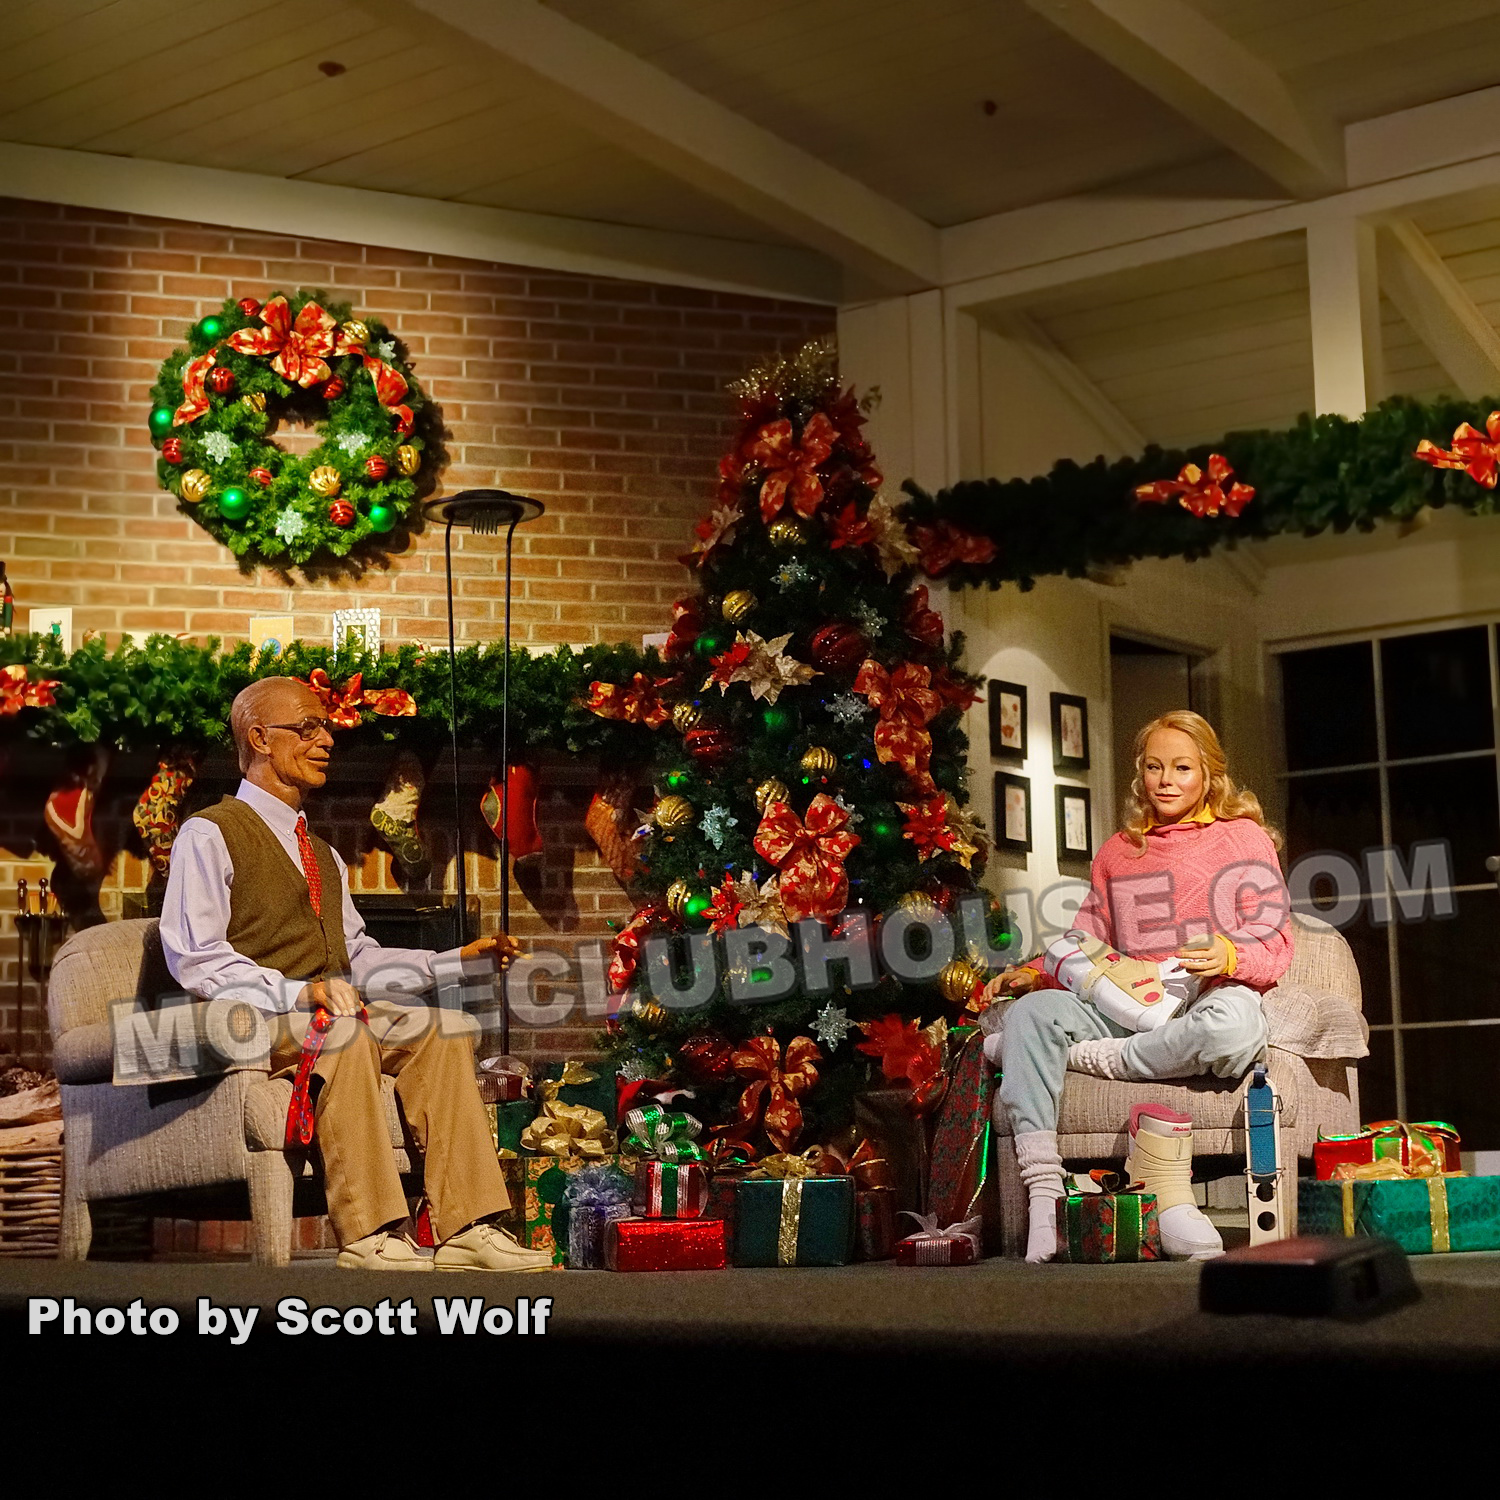 Carousel of Progress - Christmas scene in the Magic Kingdom in Walt Disney World